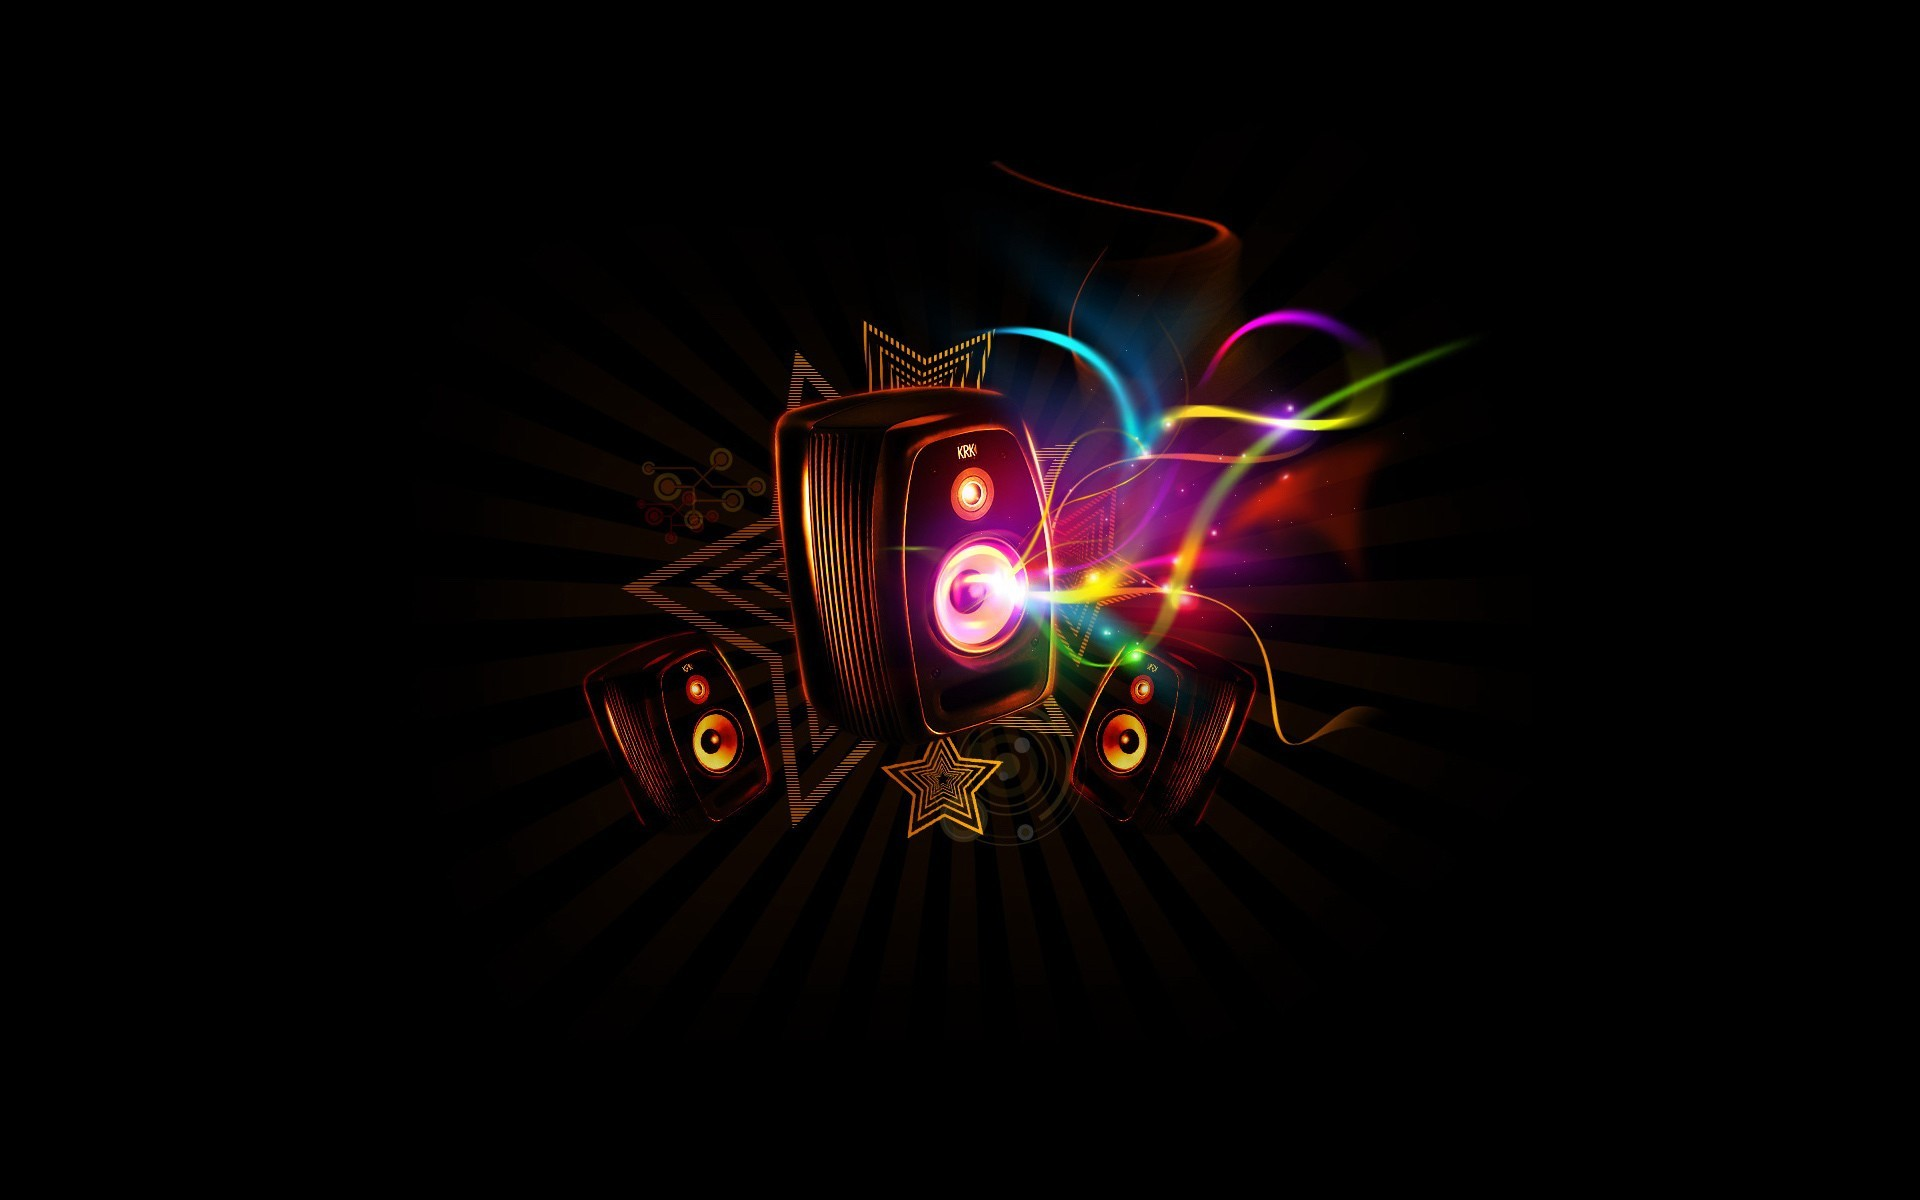 Music Abstract. Music Abstract Desktop Background